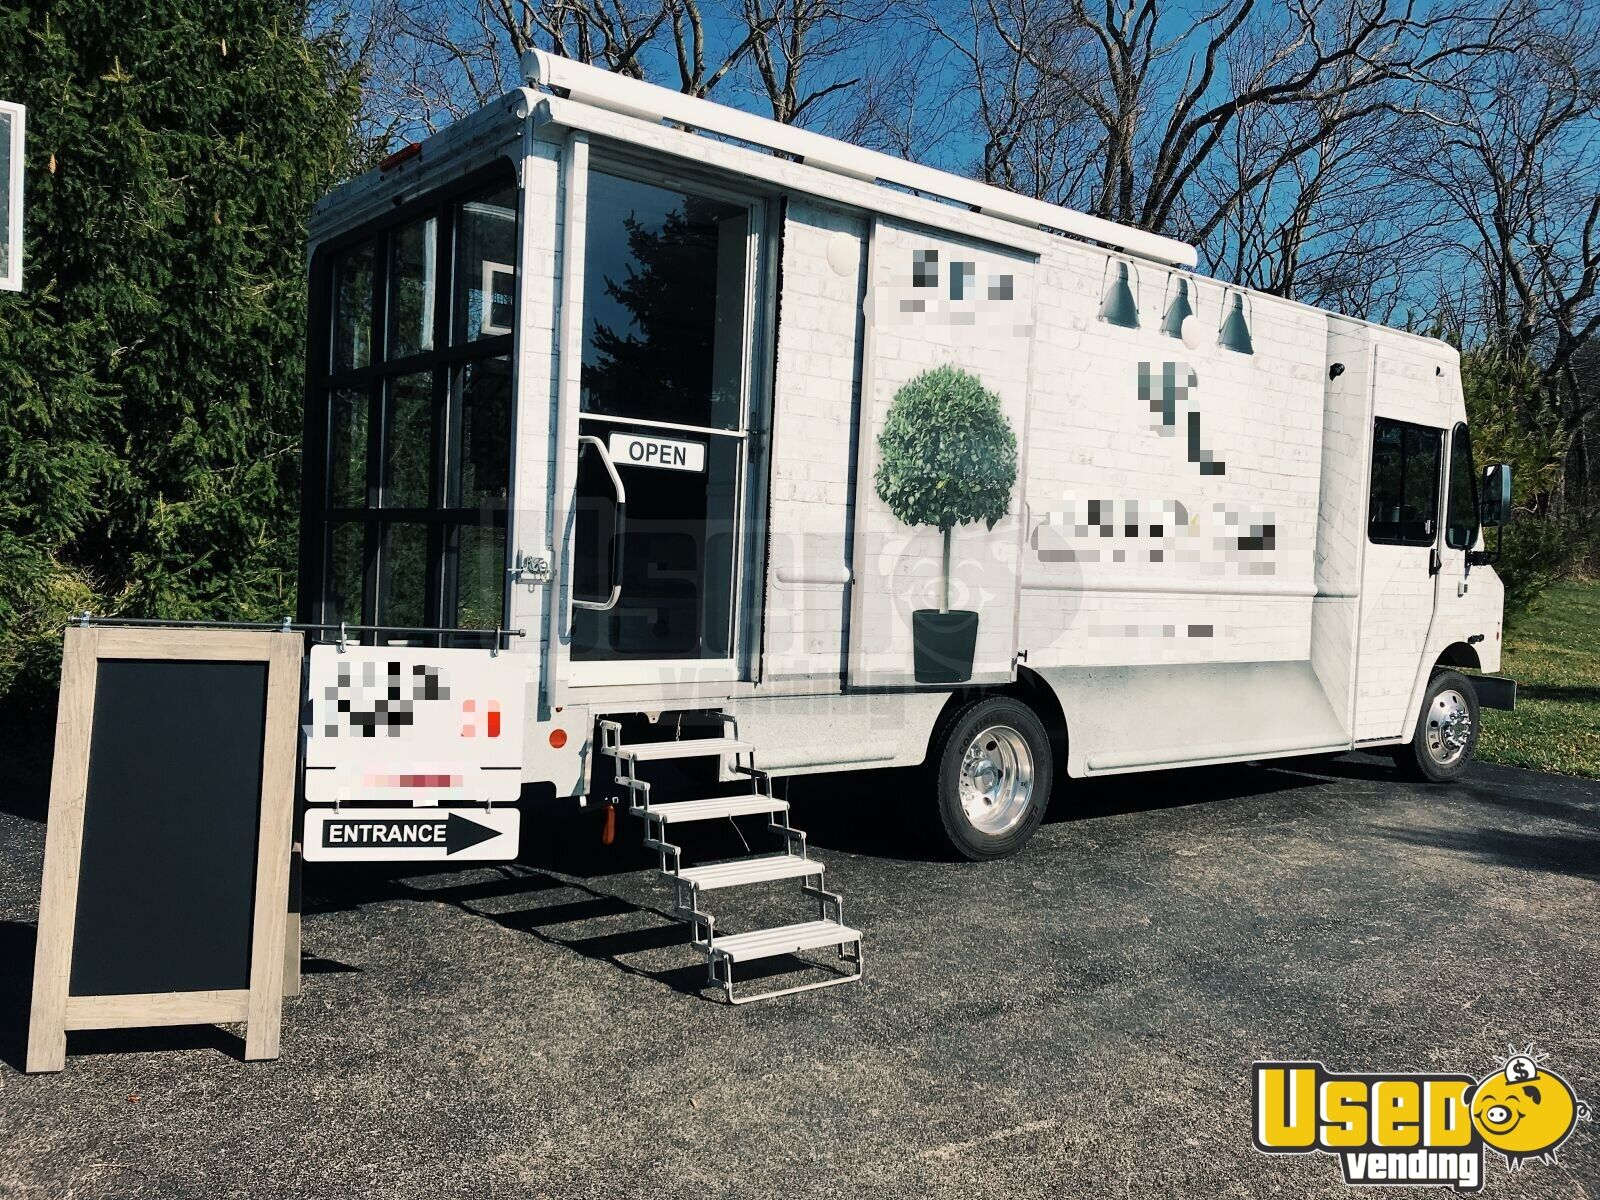 2016 Ford Step-up Van Mobile Boutique Truck Ohio Gas Engine for Sale - 1